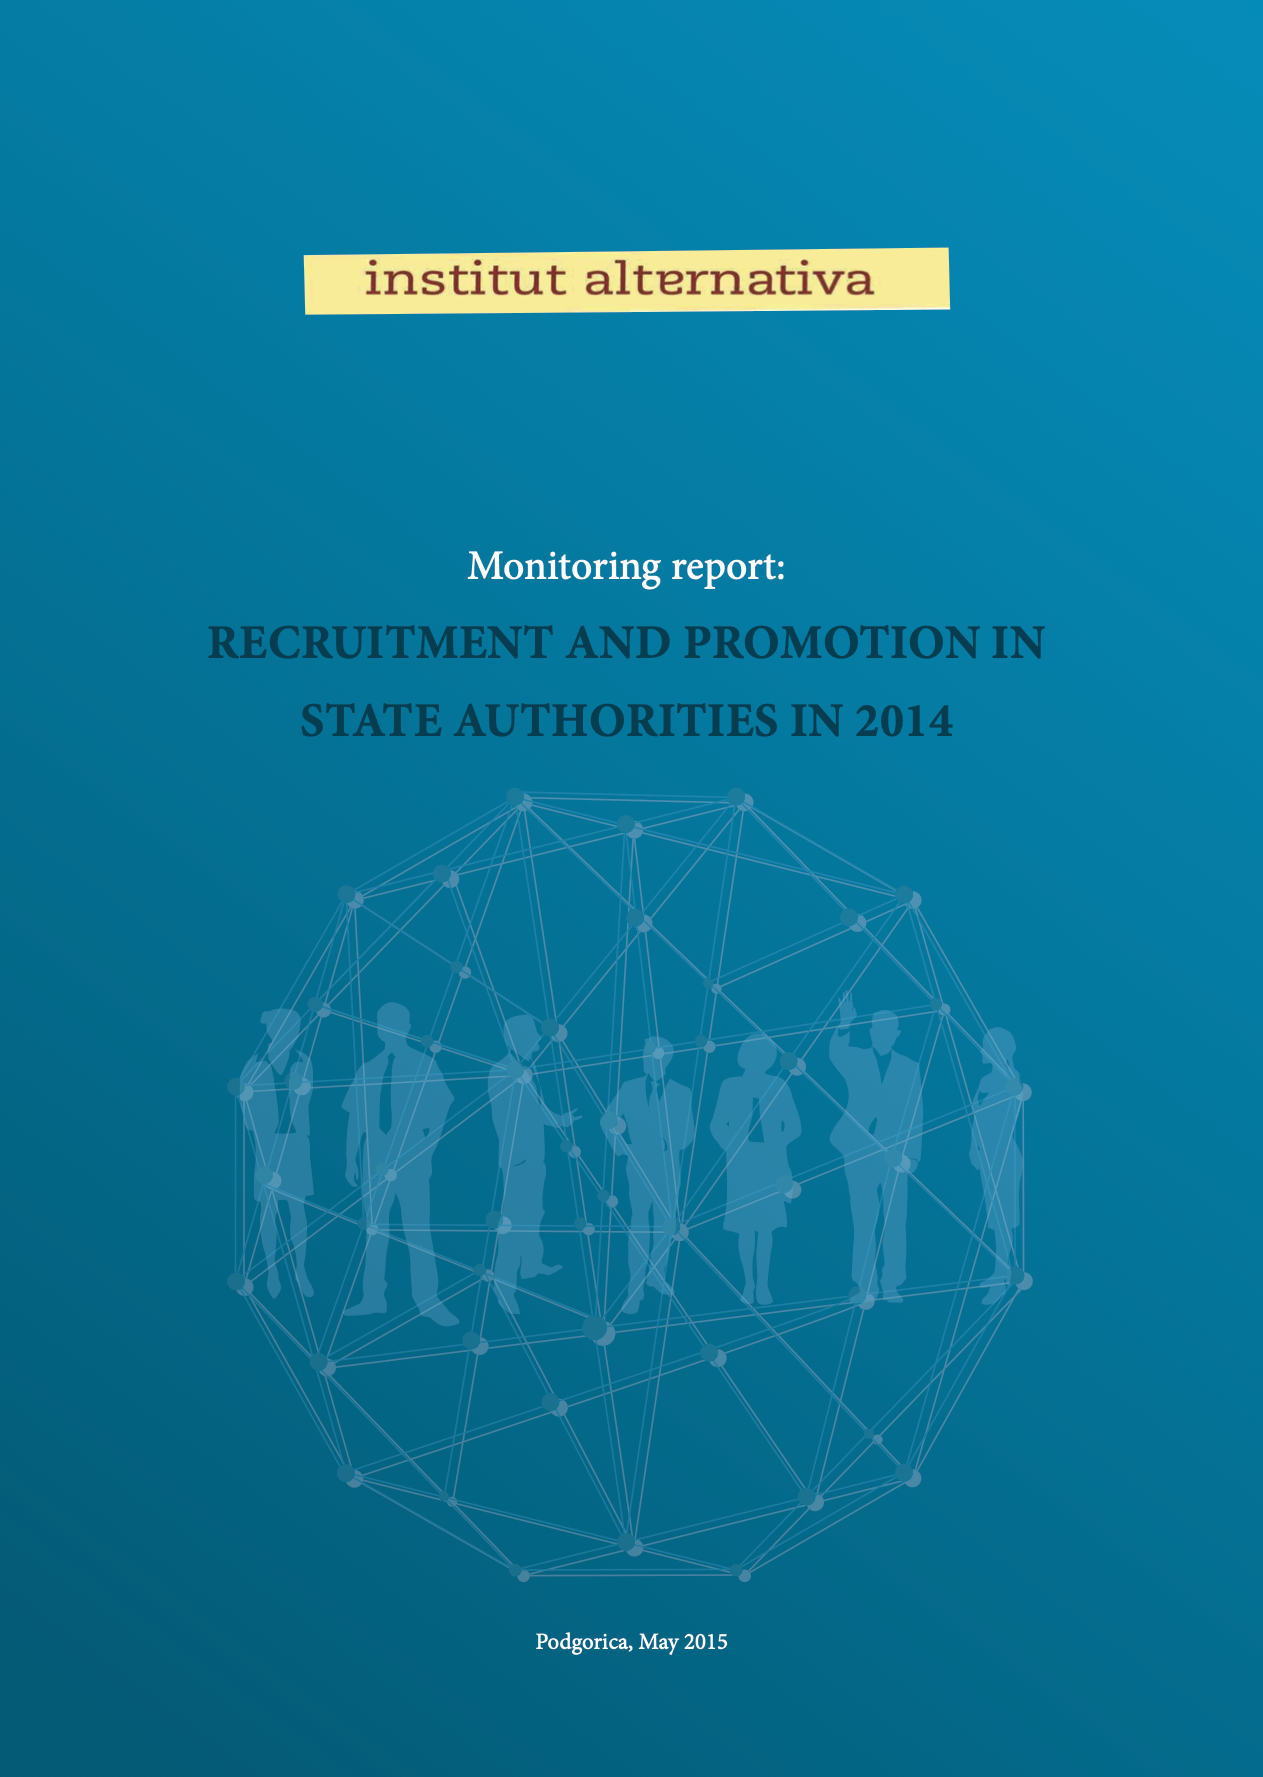 Monitoring Report: Recruitment and Promotion In State Authorities In 2014